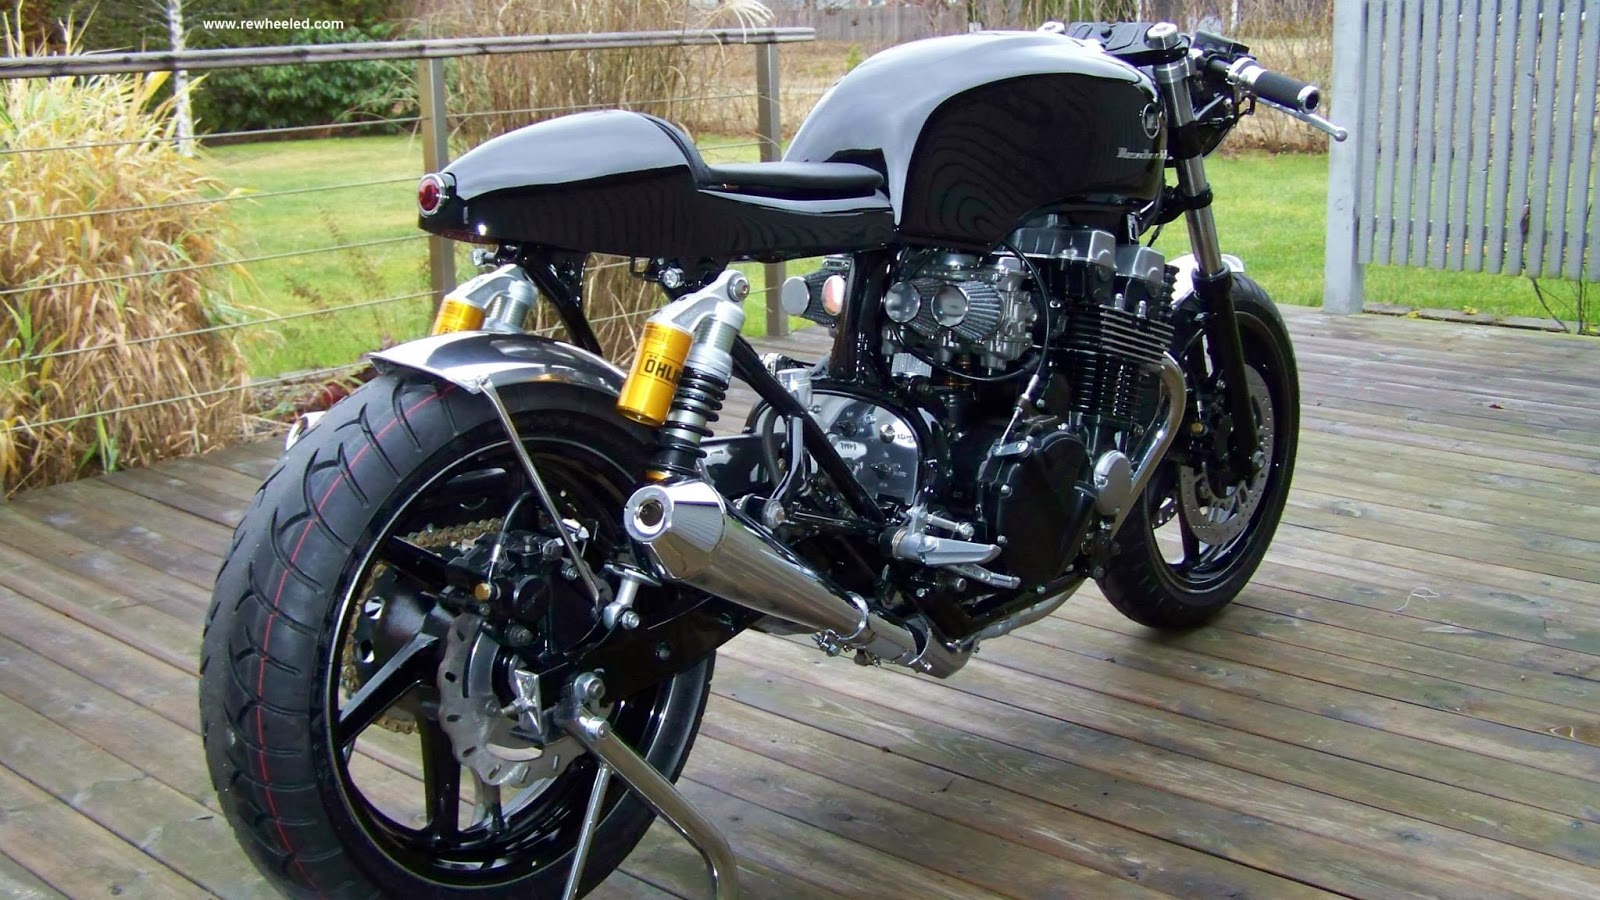 motogp honda cb 750 seven fifty caf racer by re cycles bikes rewheeled ab. Black Bedroom Furniture Sets. Home Design Ideas